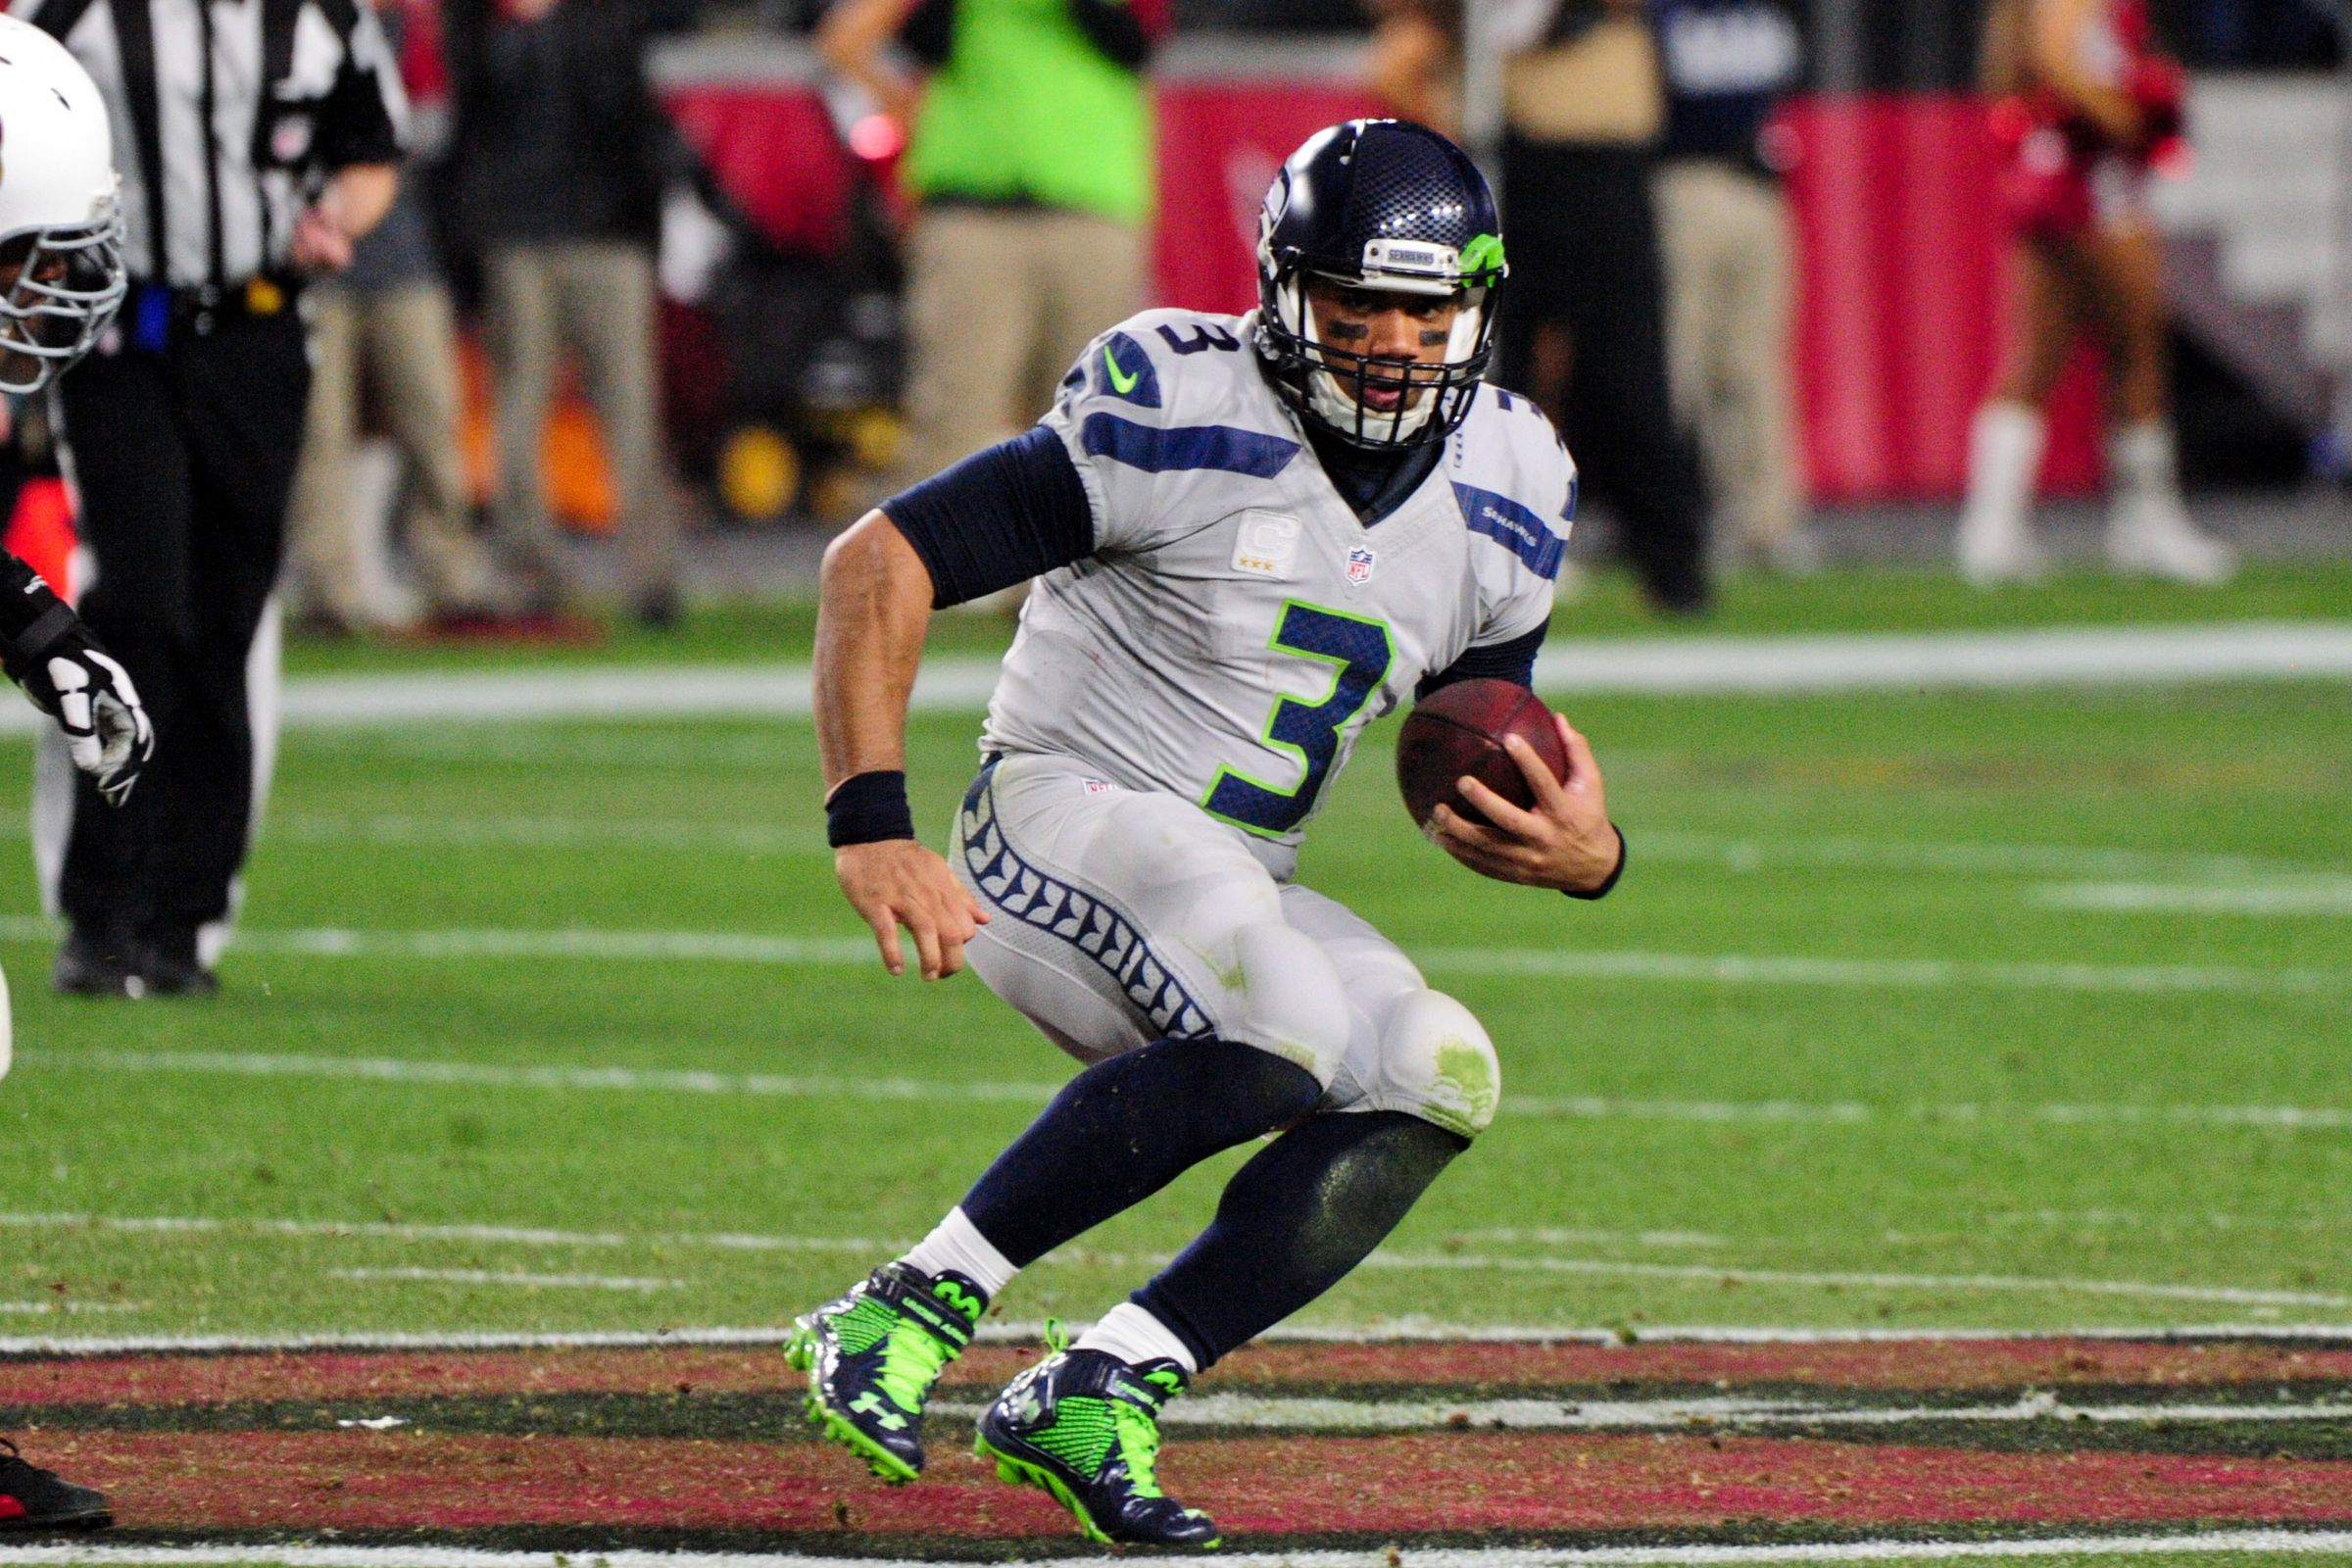 mlb odds of making playoffs vikings vs seahawks point spread